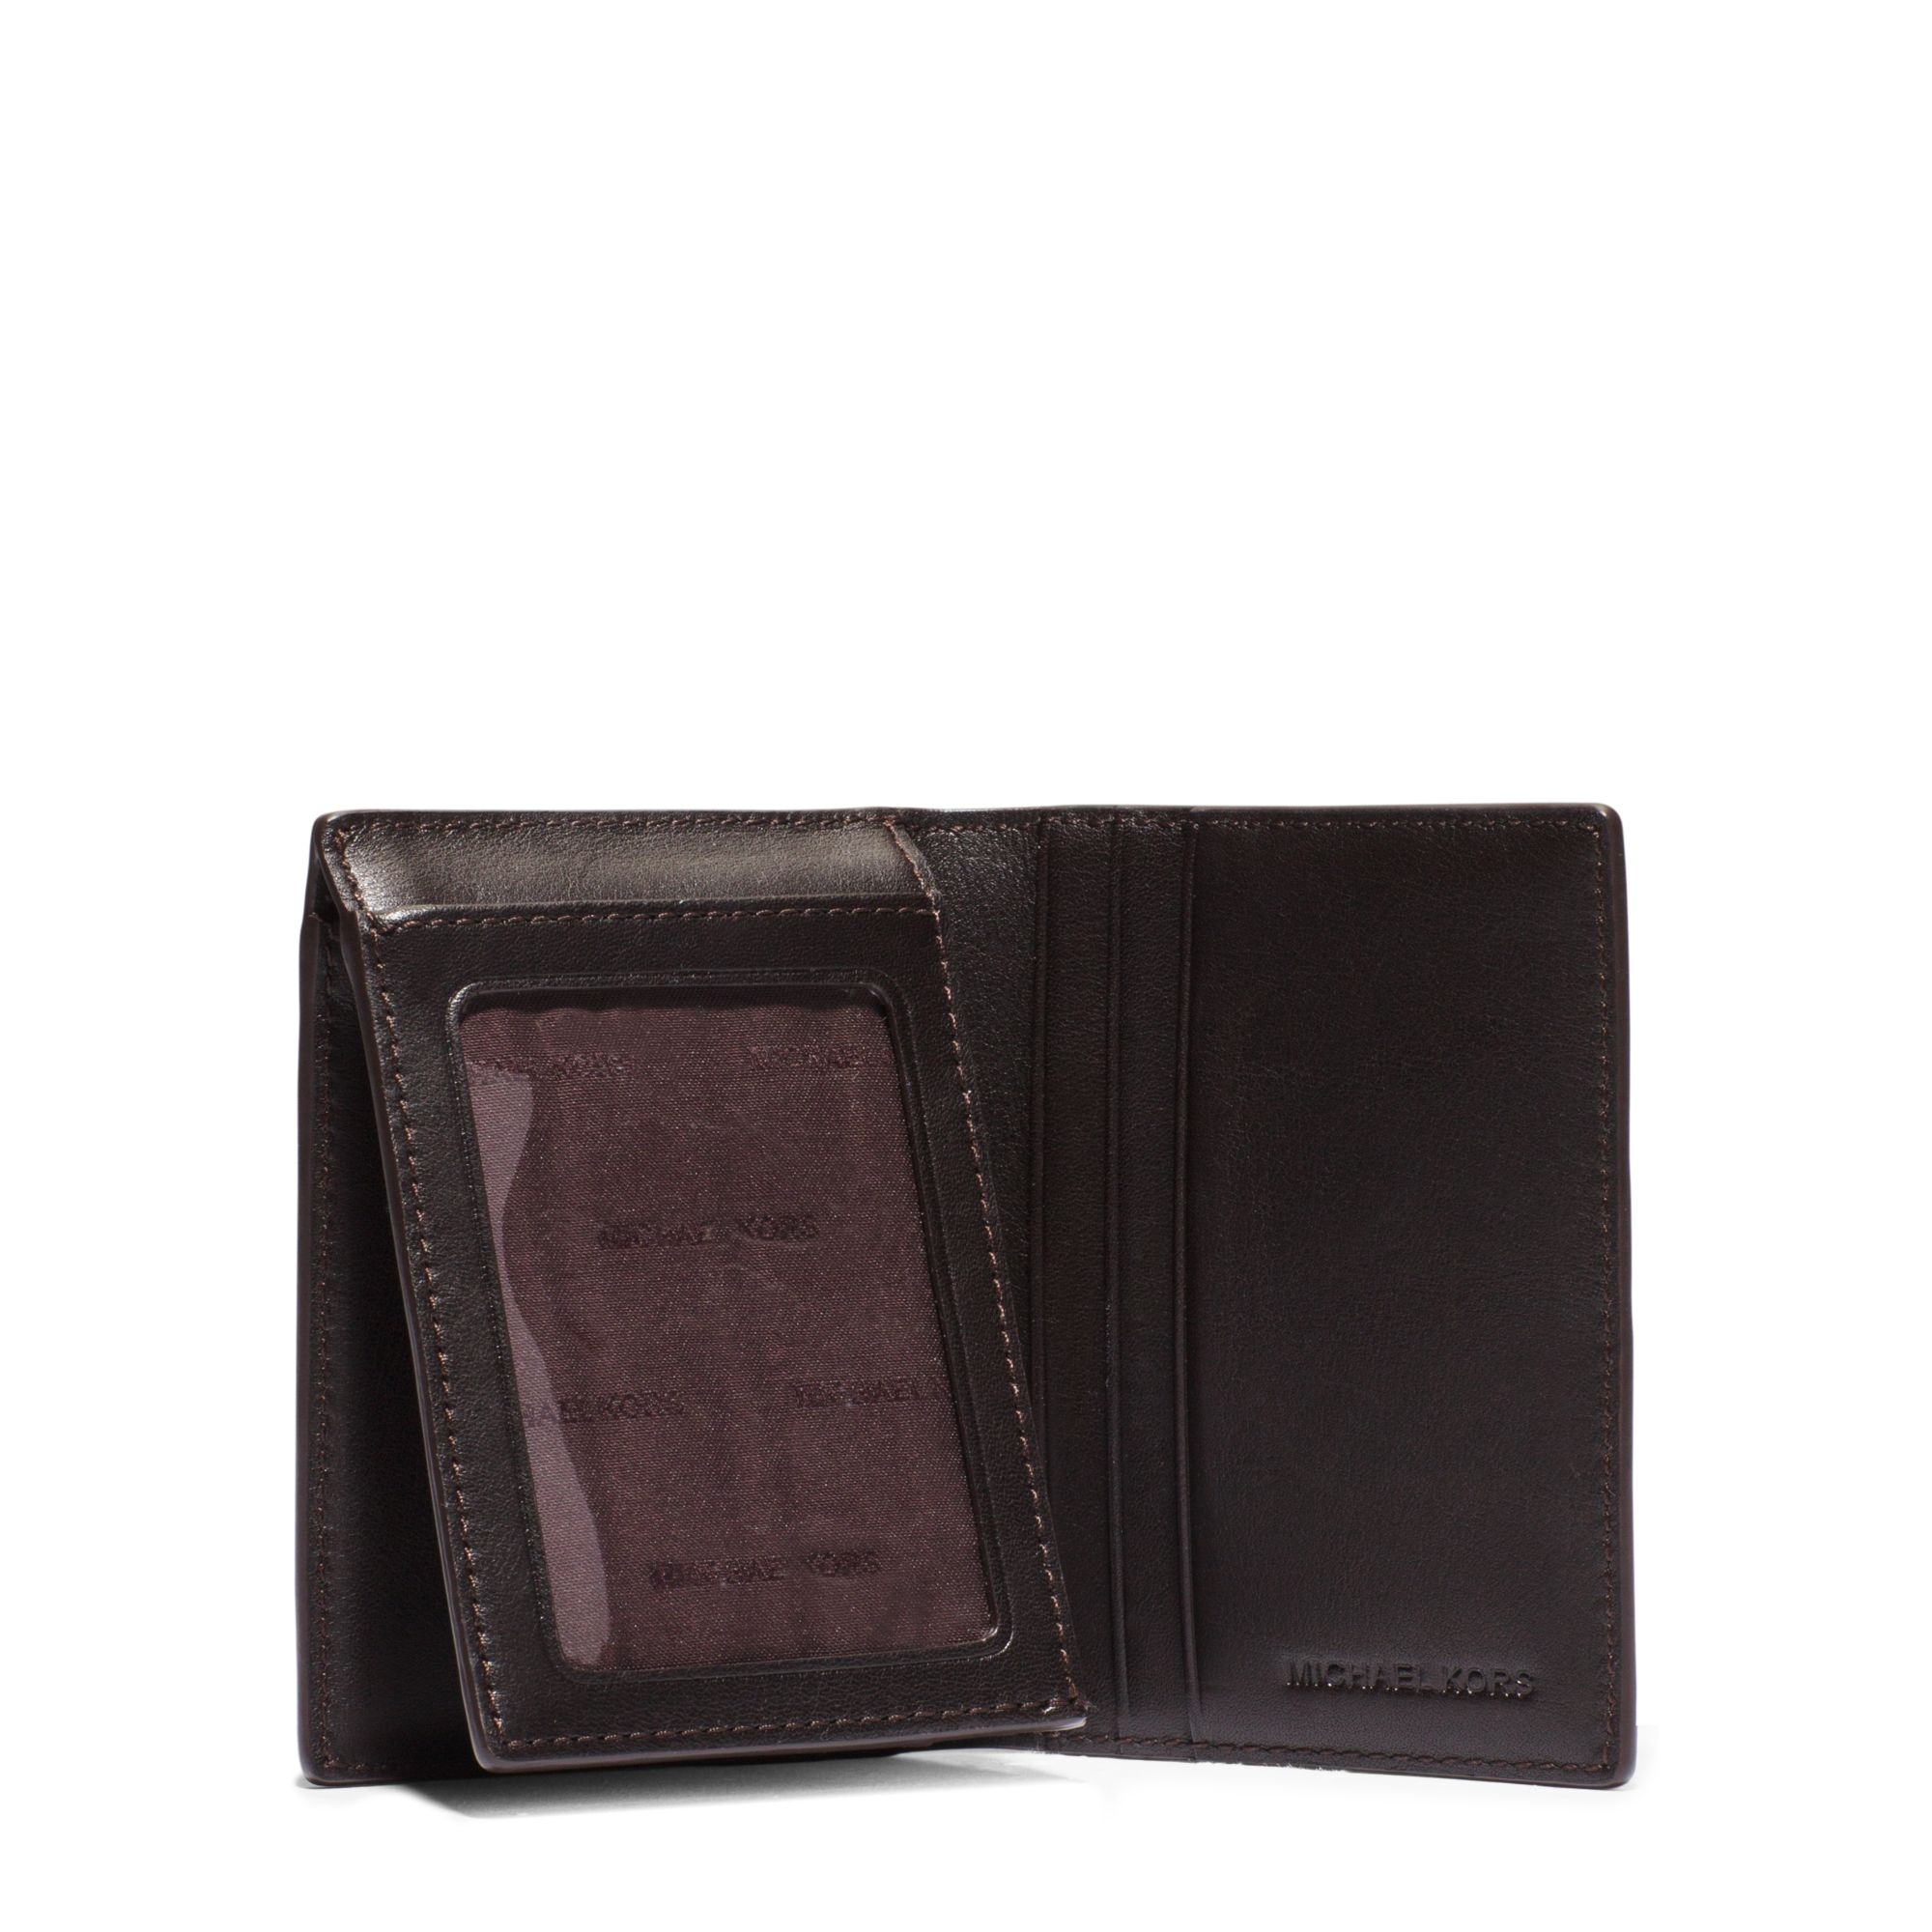 263e5f6b5cda ... ZIP Around Wallet Lyst - Michael Kors Jet Set Logo L-fold Wallet in  Brown for ...